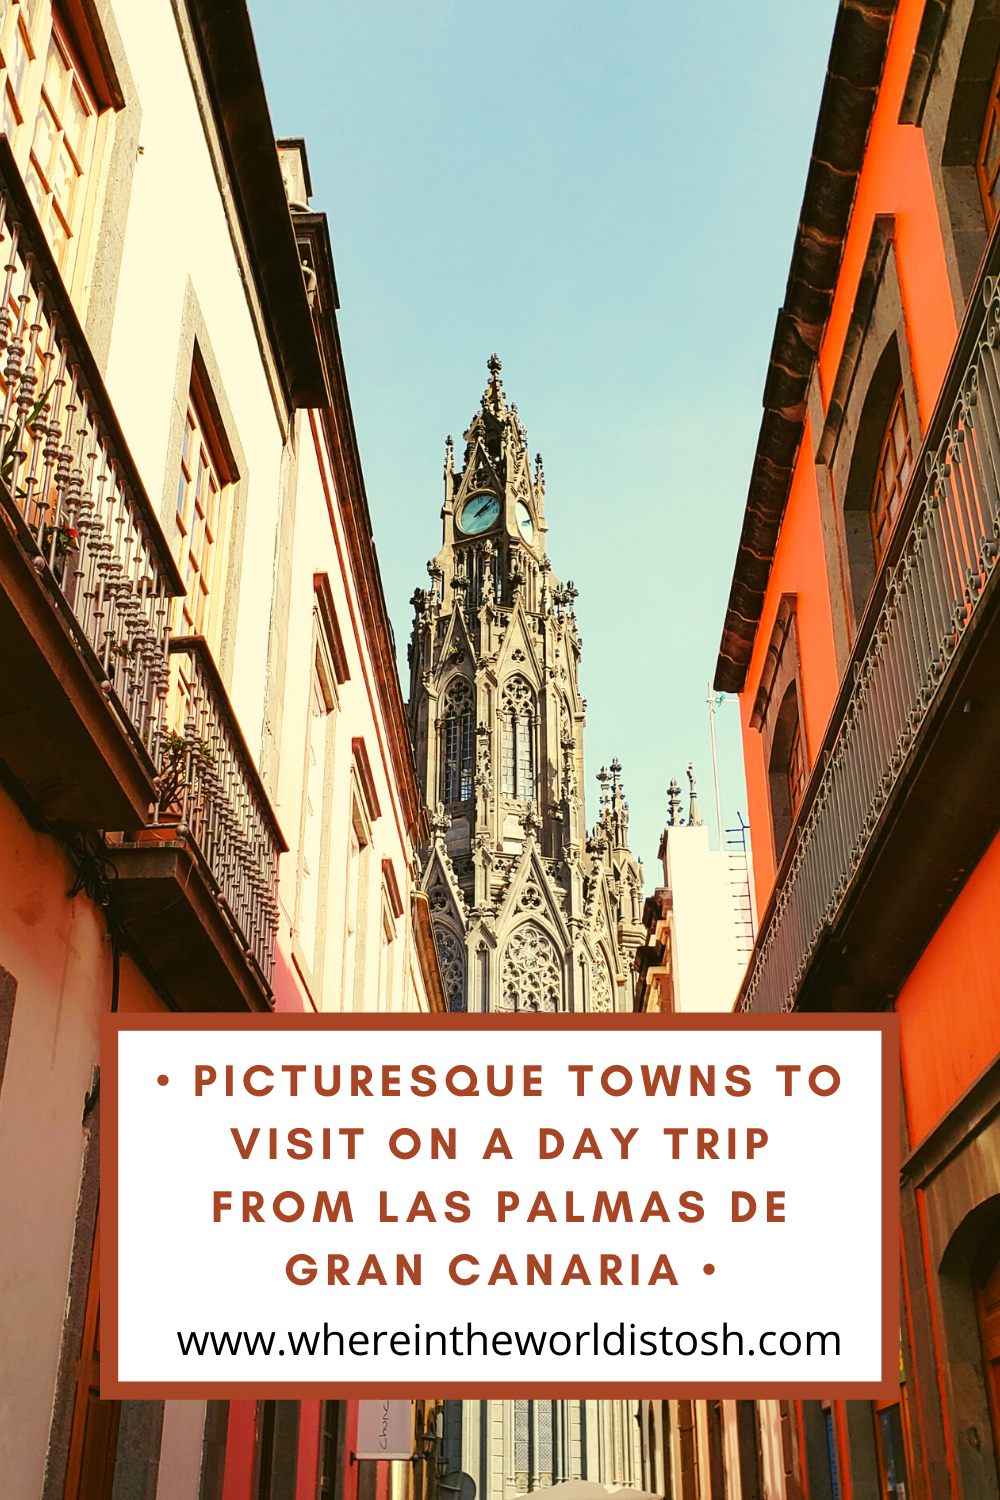 Picturesque Towns To Visit On A Day Trip From Las Palmas De Gran Canaria